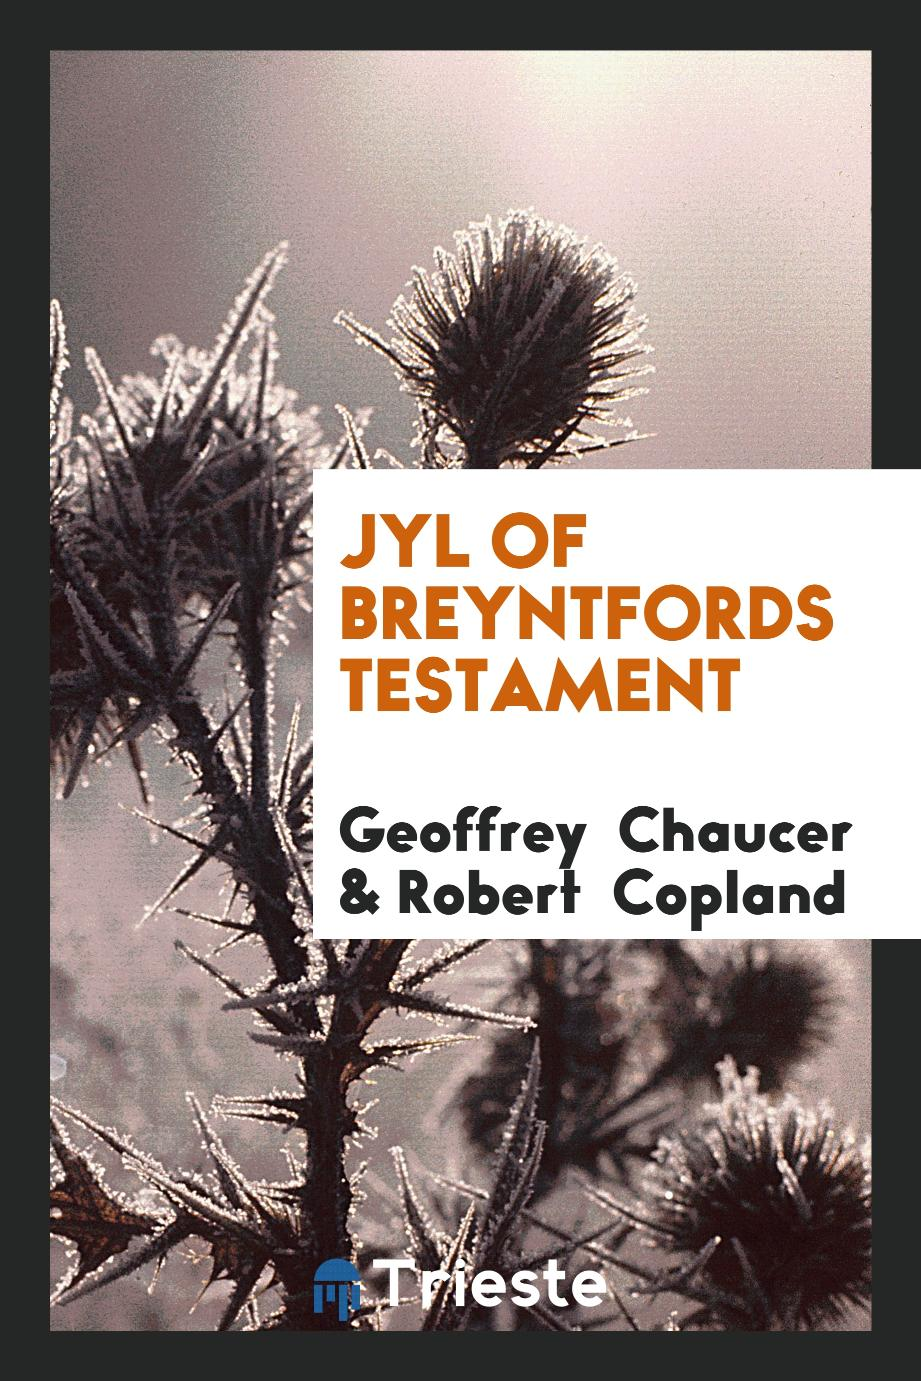 Jyl of Breyntfords Testament